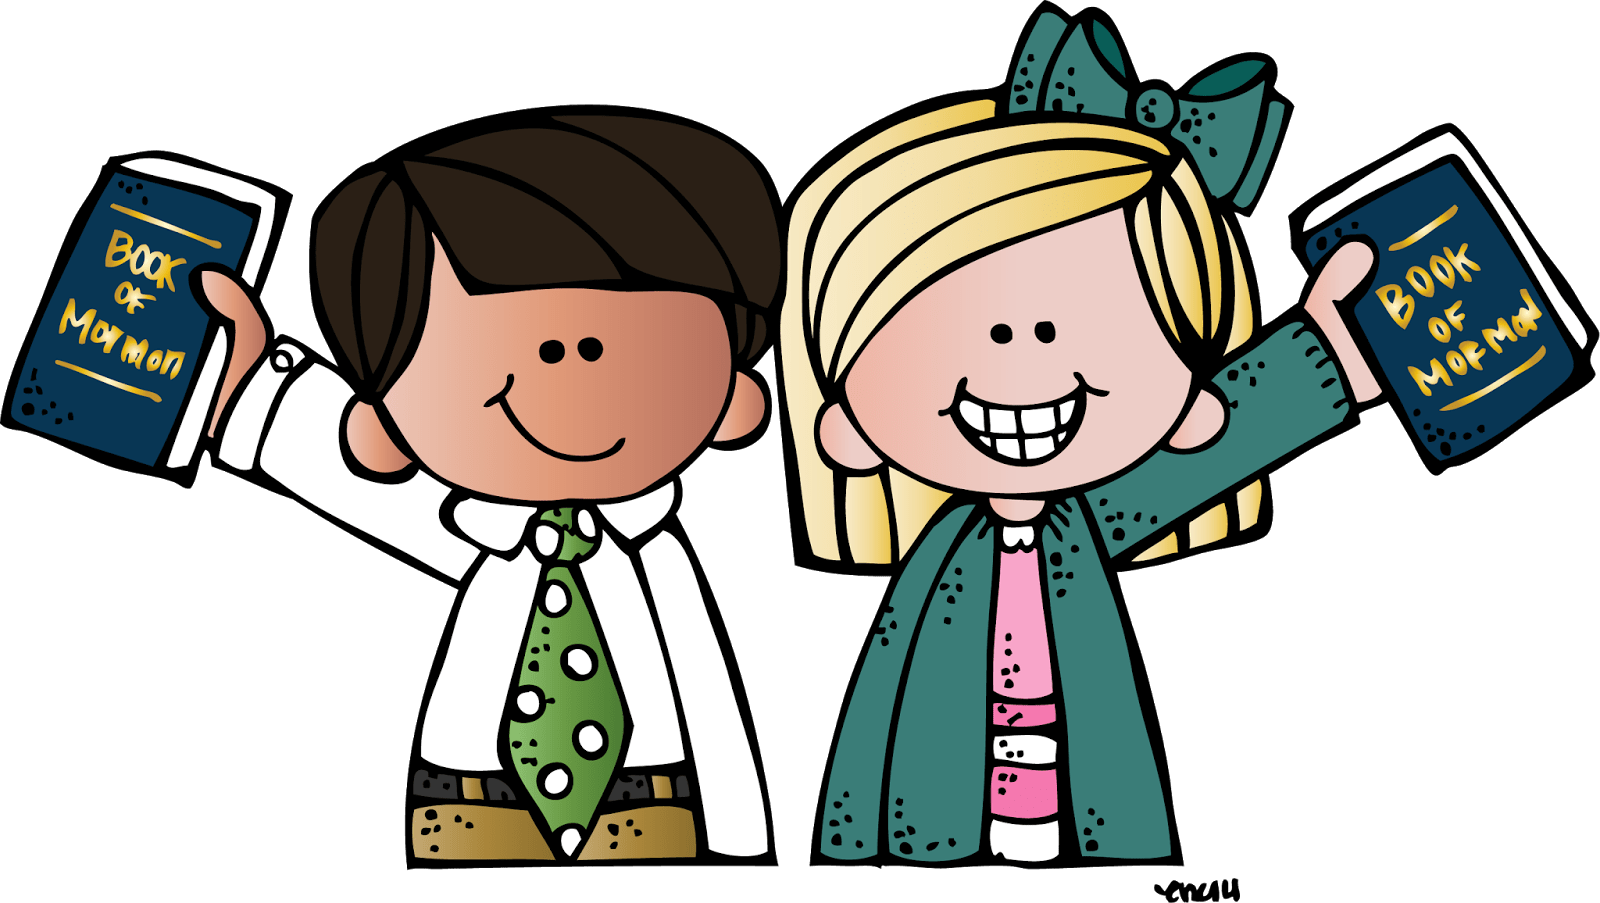 Latter day saints clipart clipart images gallery for free.